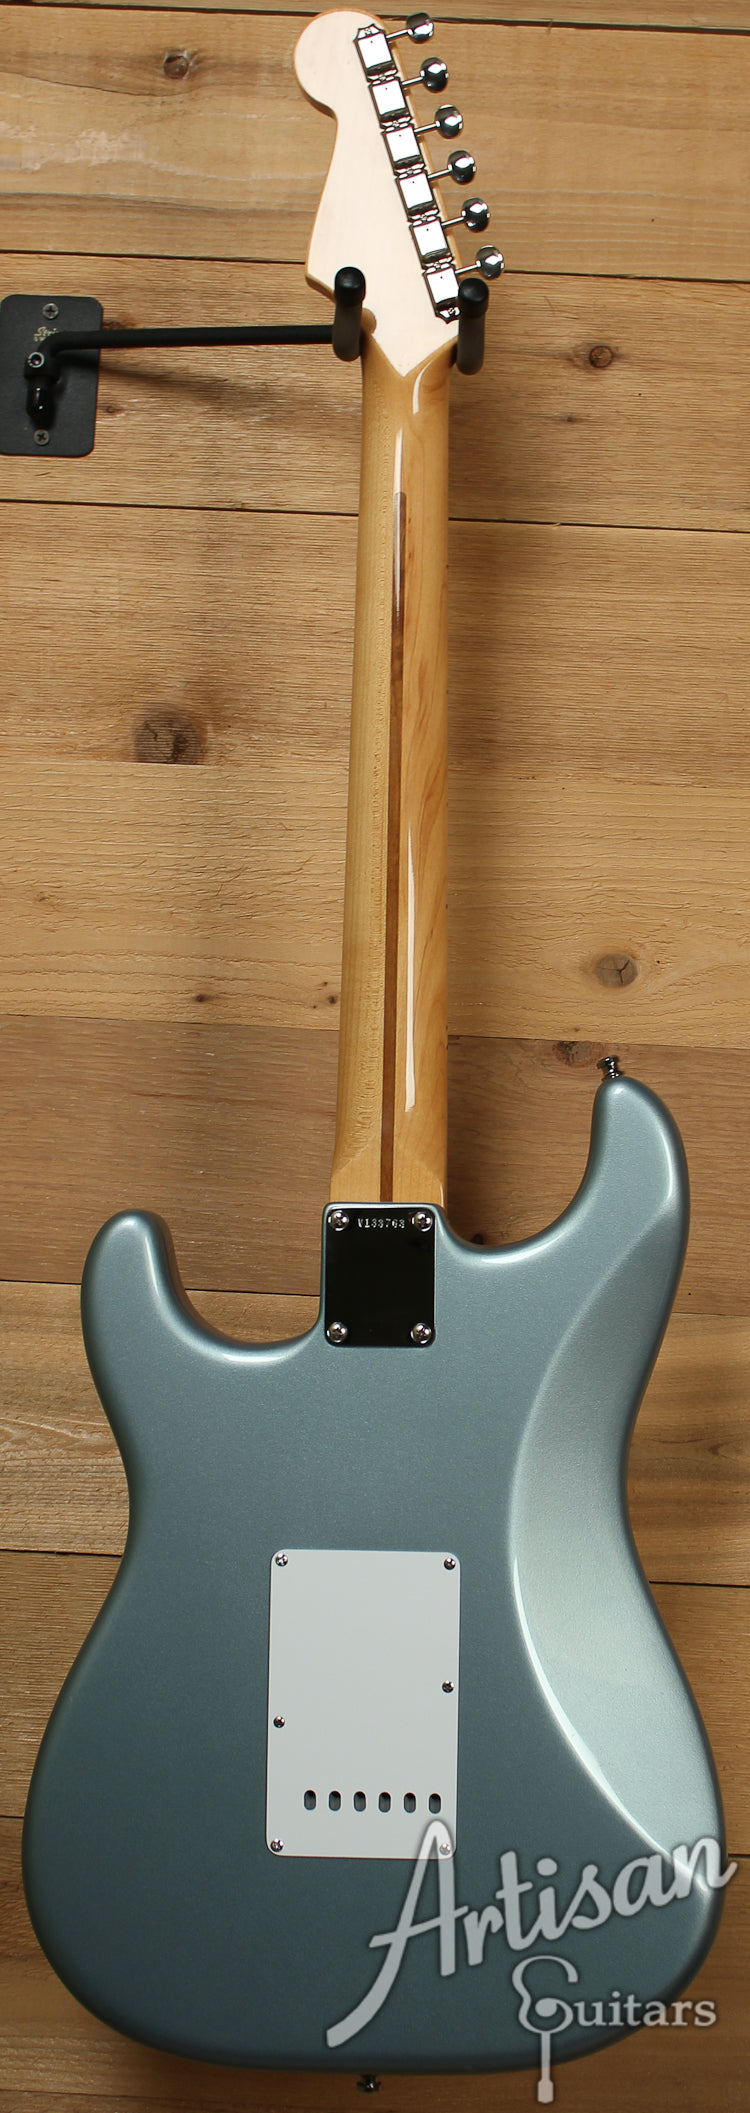 2001 Fender American Vintage 1957 Stratocaster in Ice Blue Metallic ID-7450 - Artisan Guitars